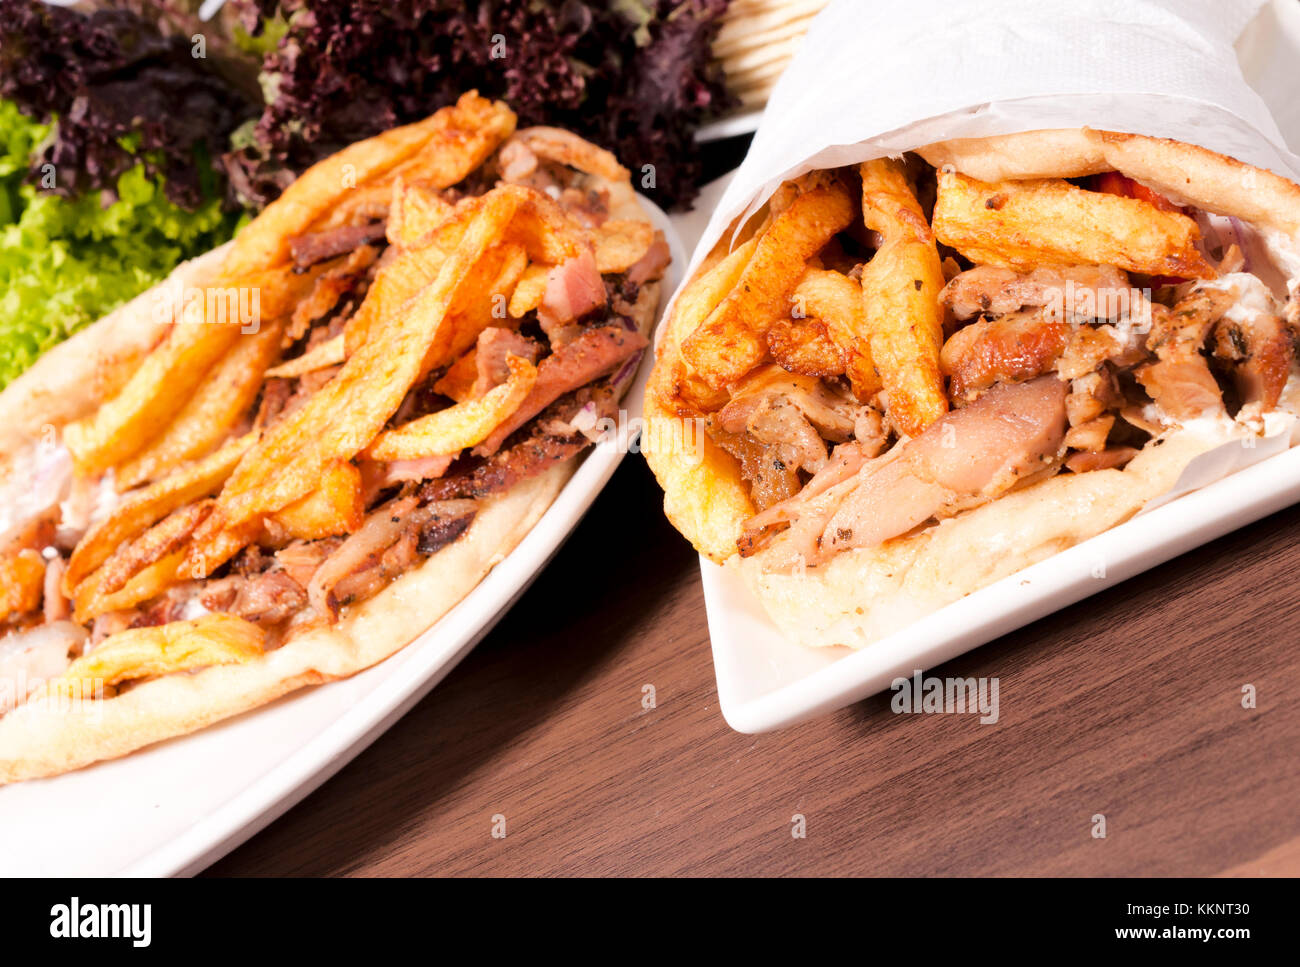 Portions of gyros on the table - Stock Image